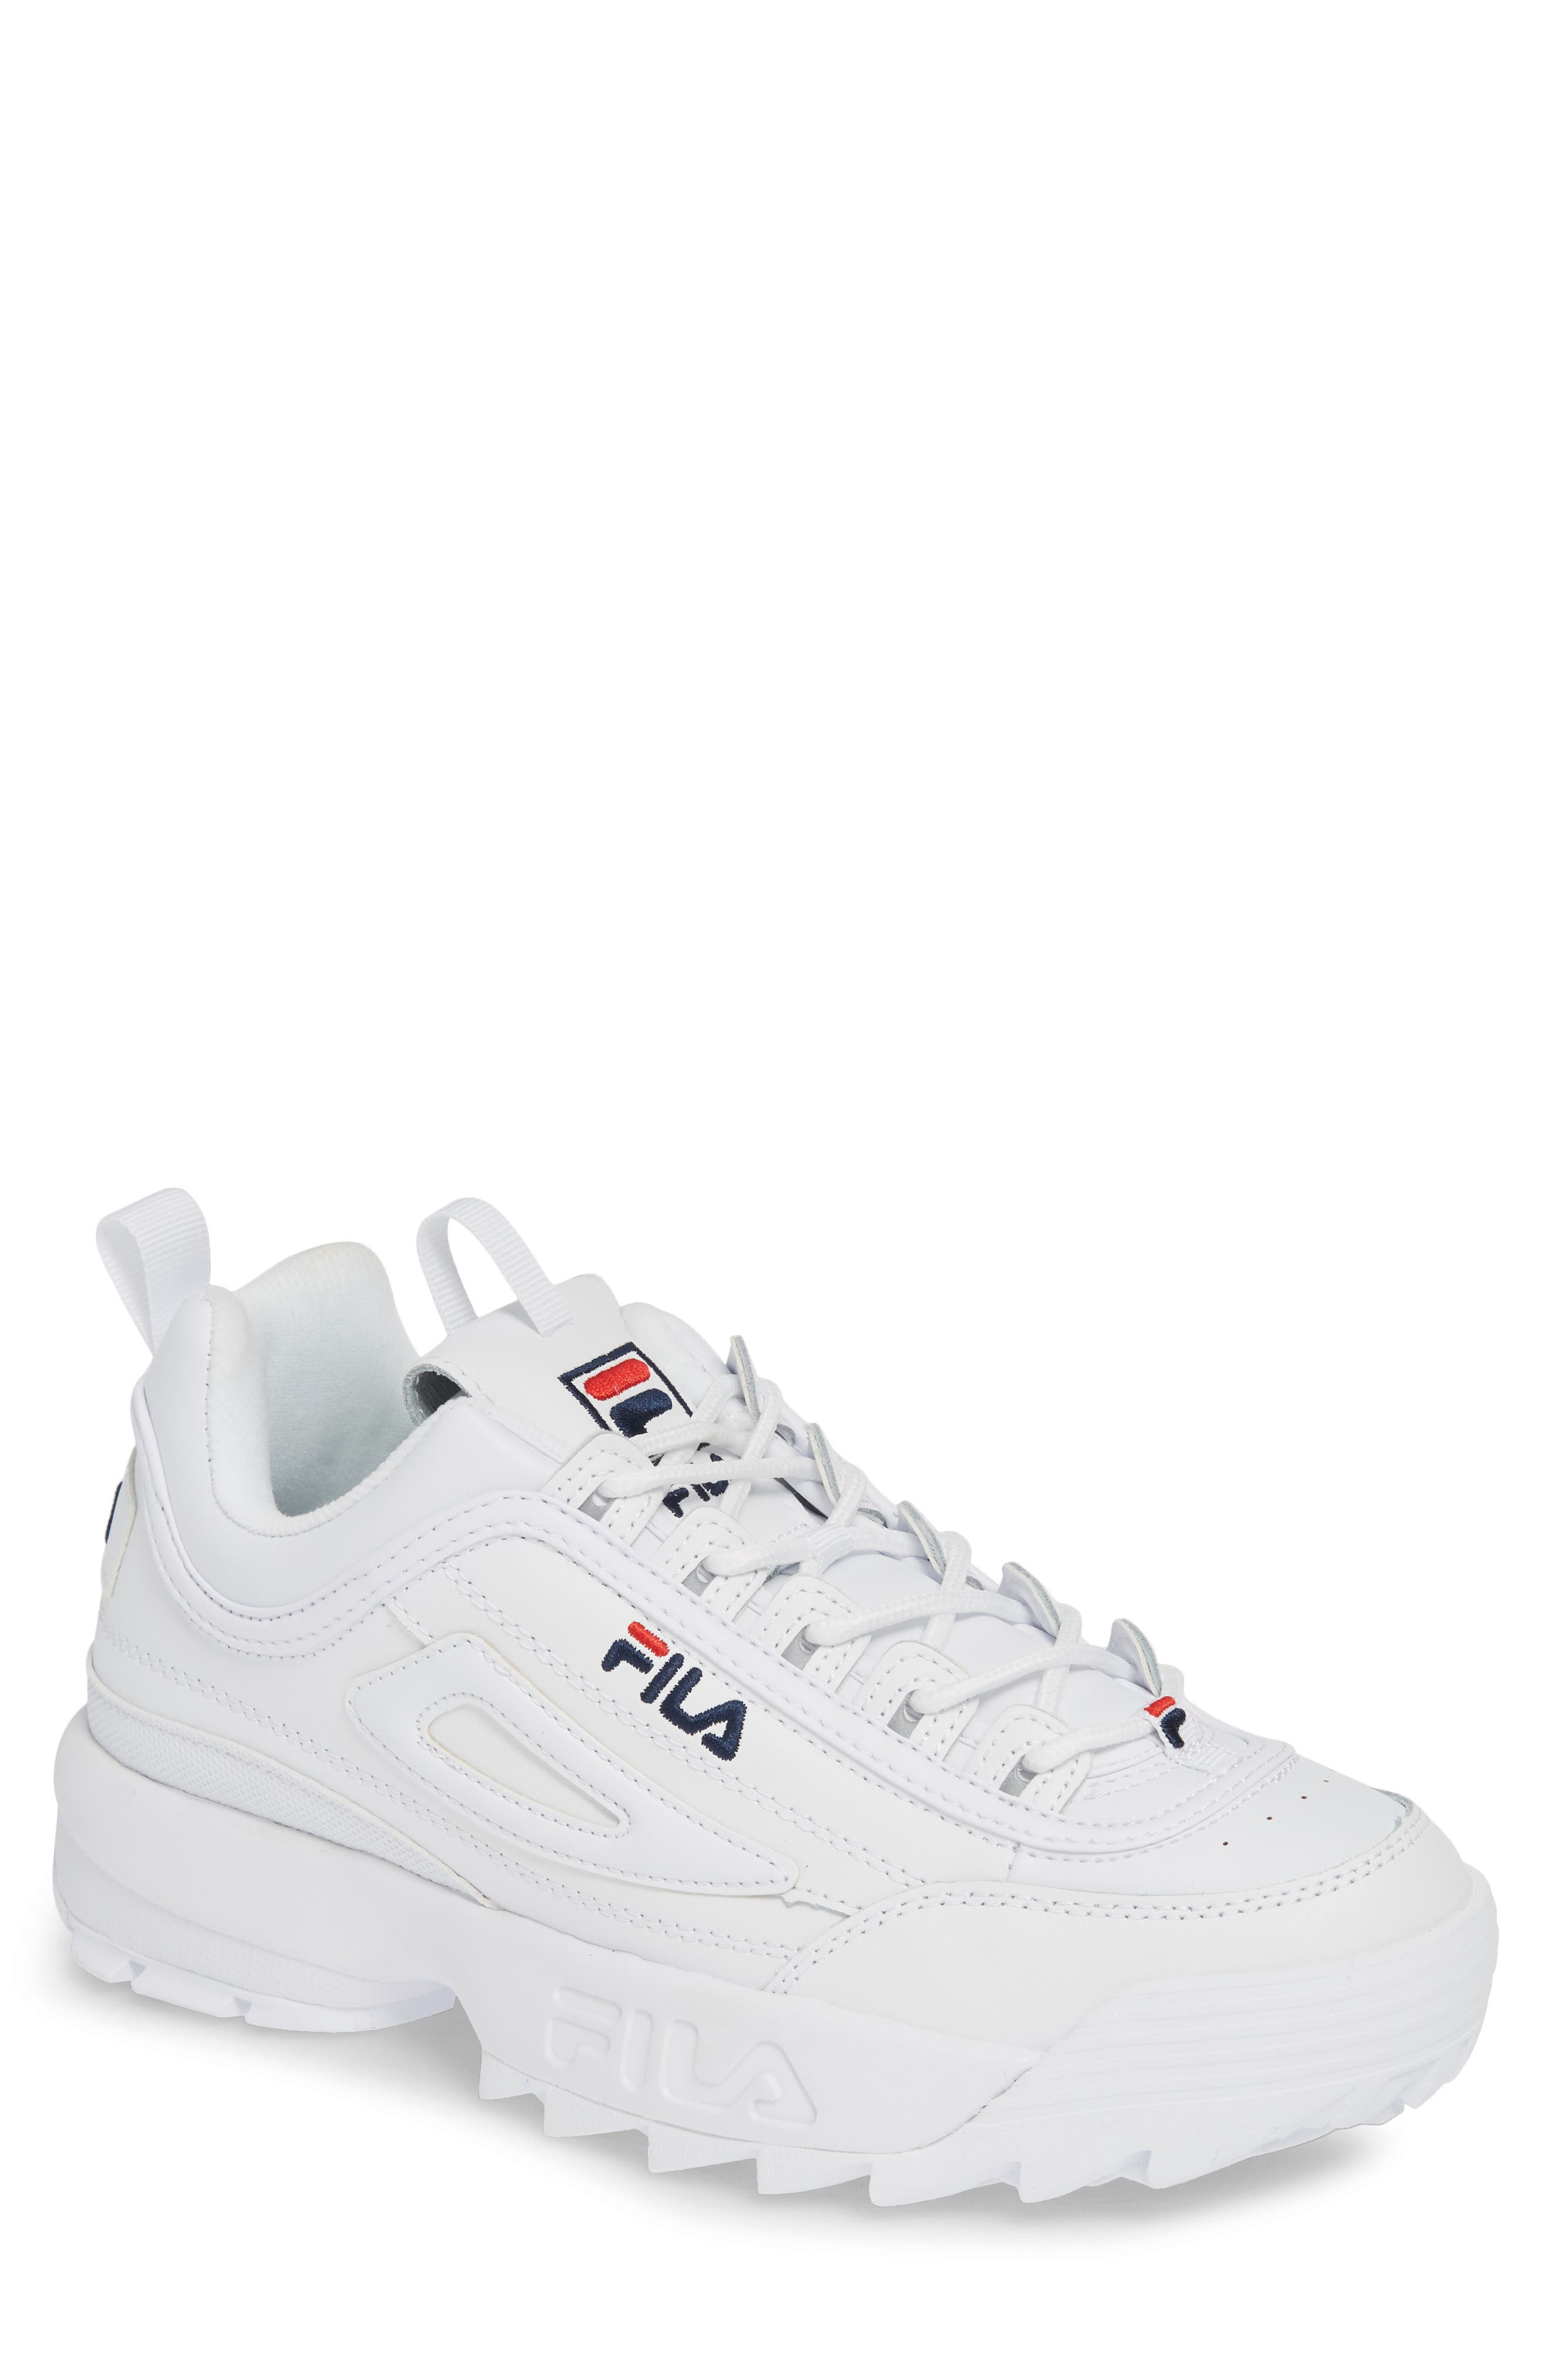 Disruptor II Premium Sneaker, Main, color, WHITE/ NAVY/ RED